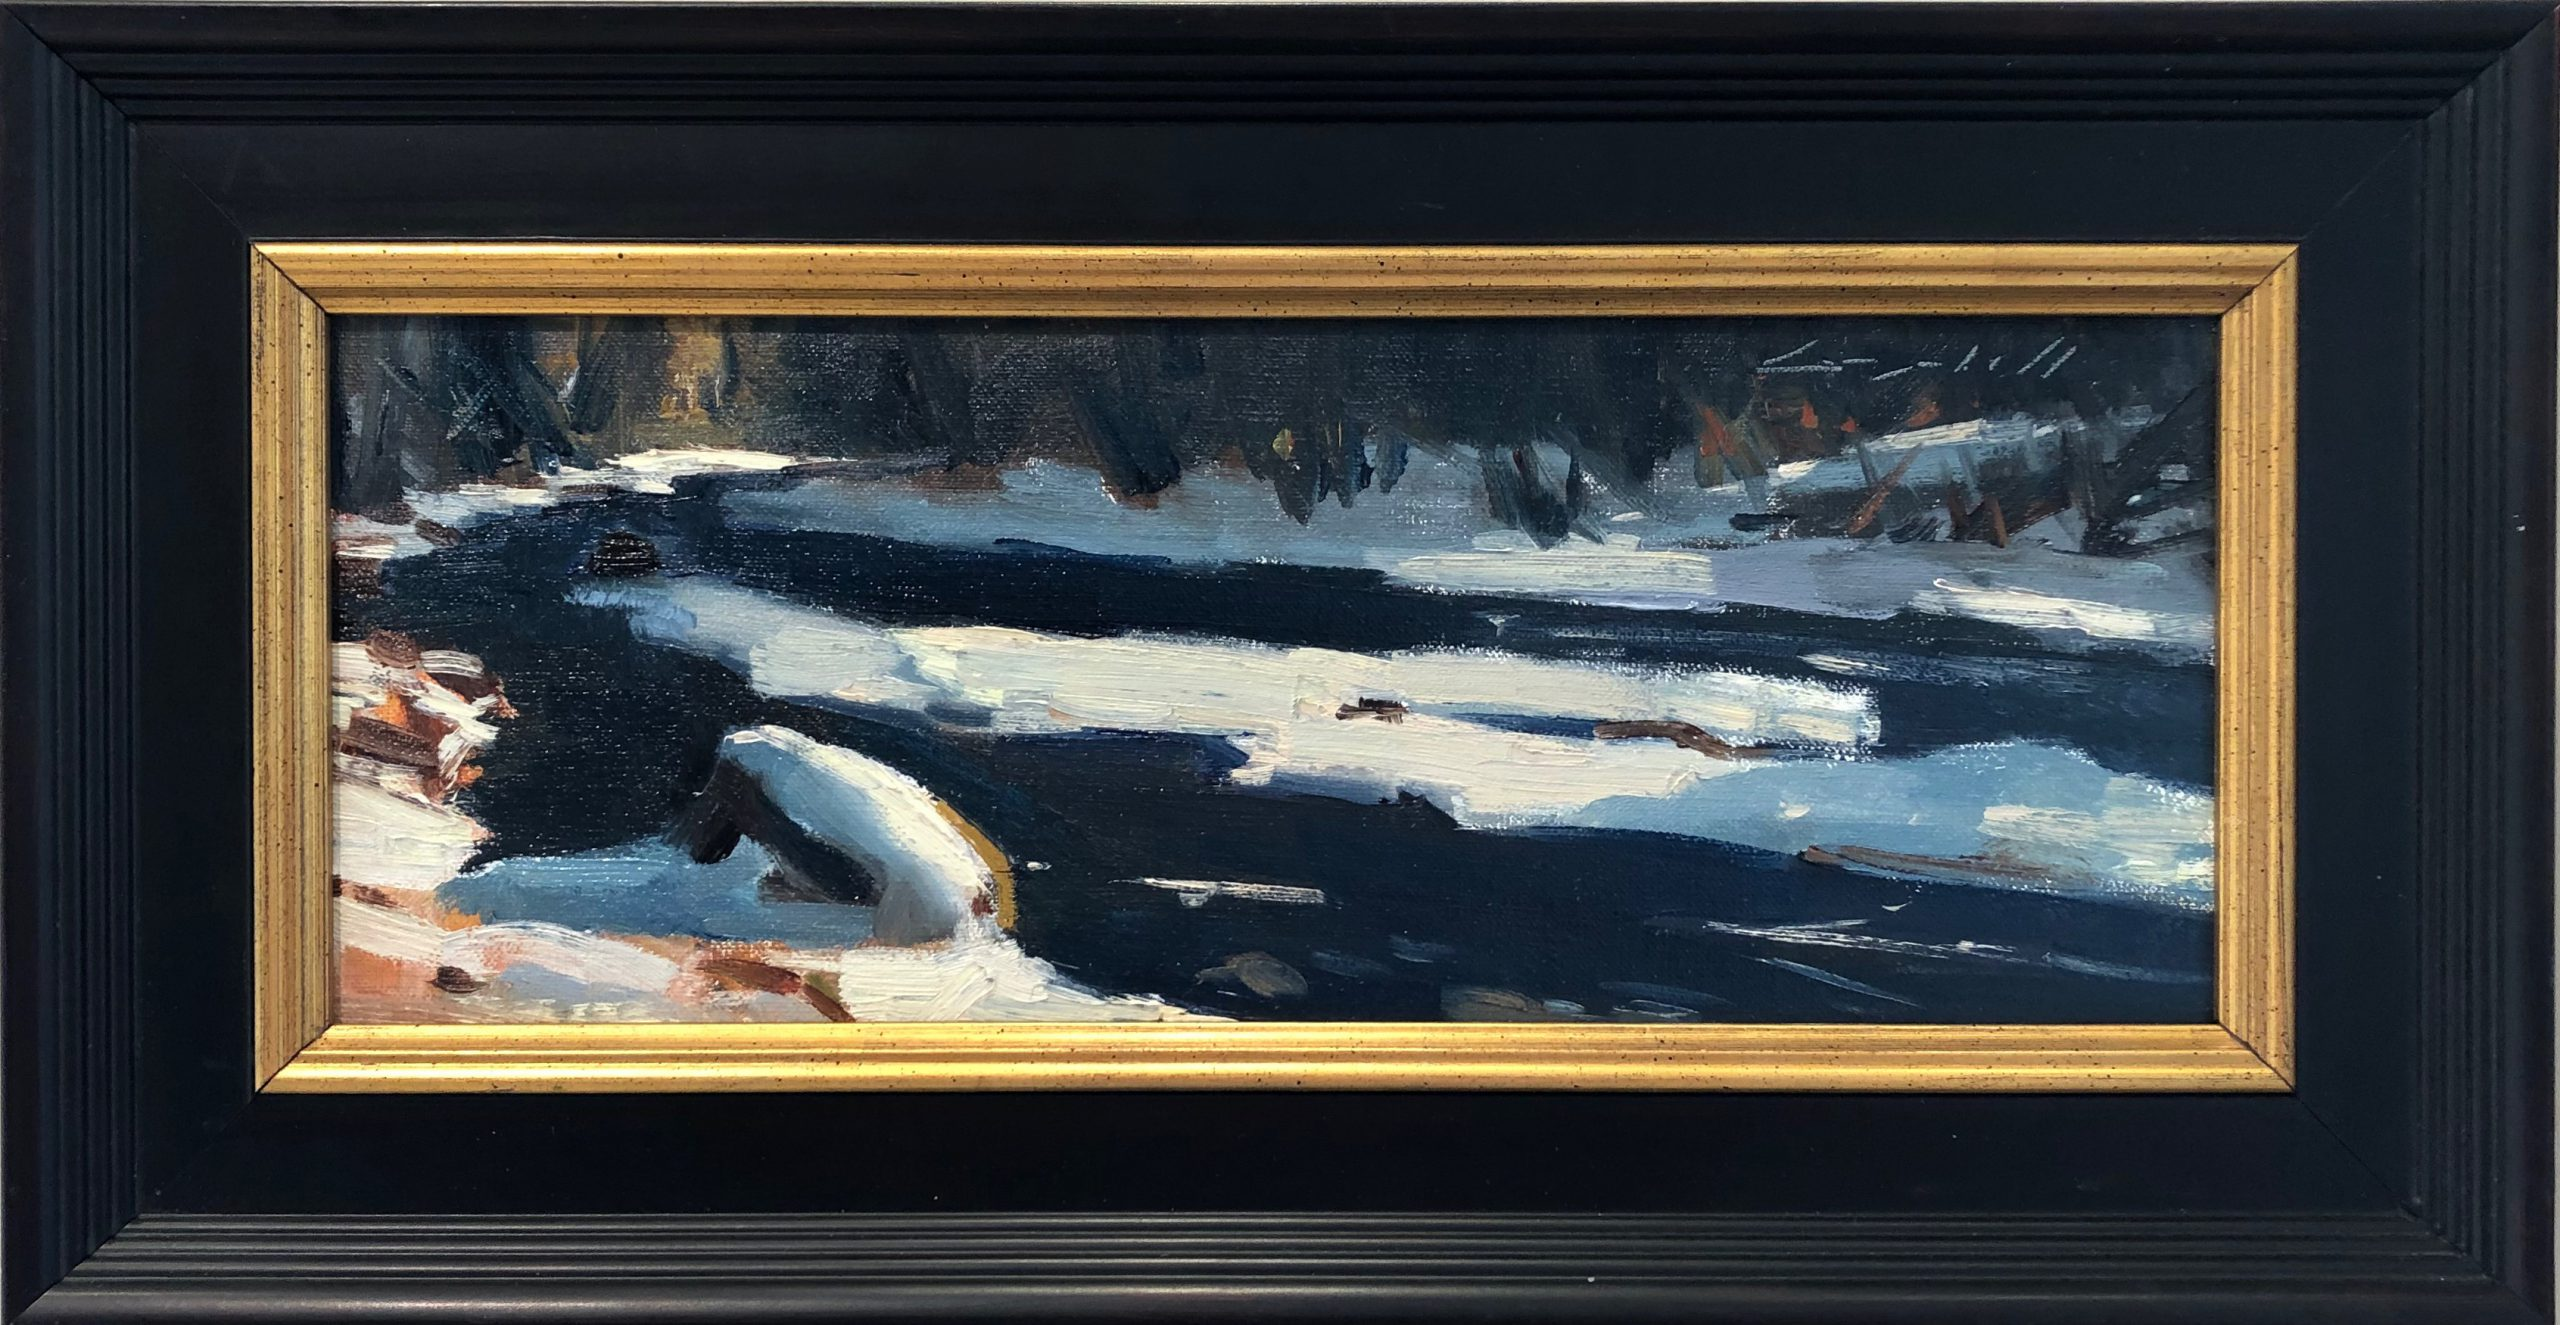 Peter Campbell - Winter on the Roaring Fork